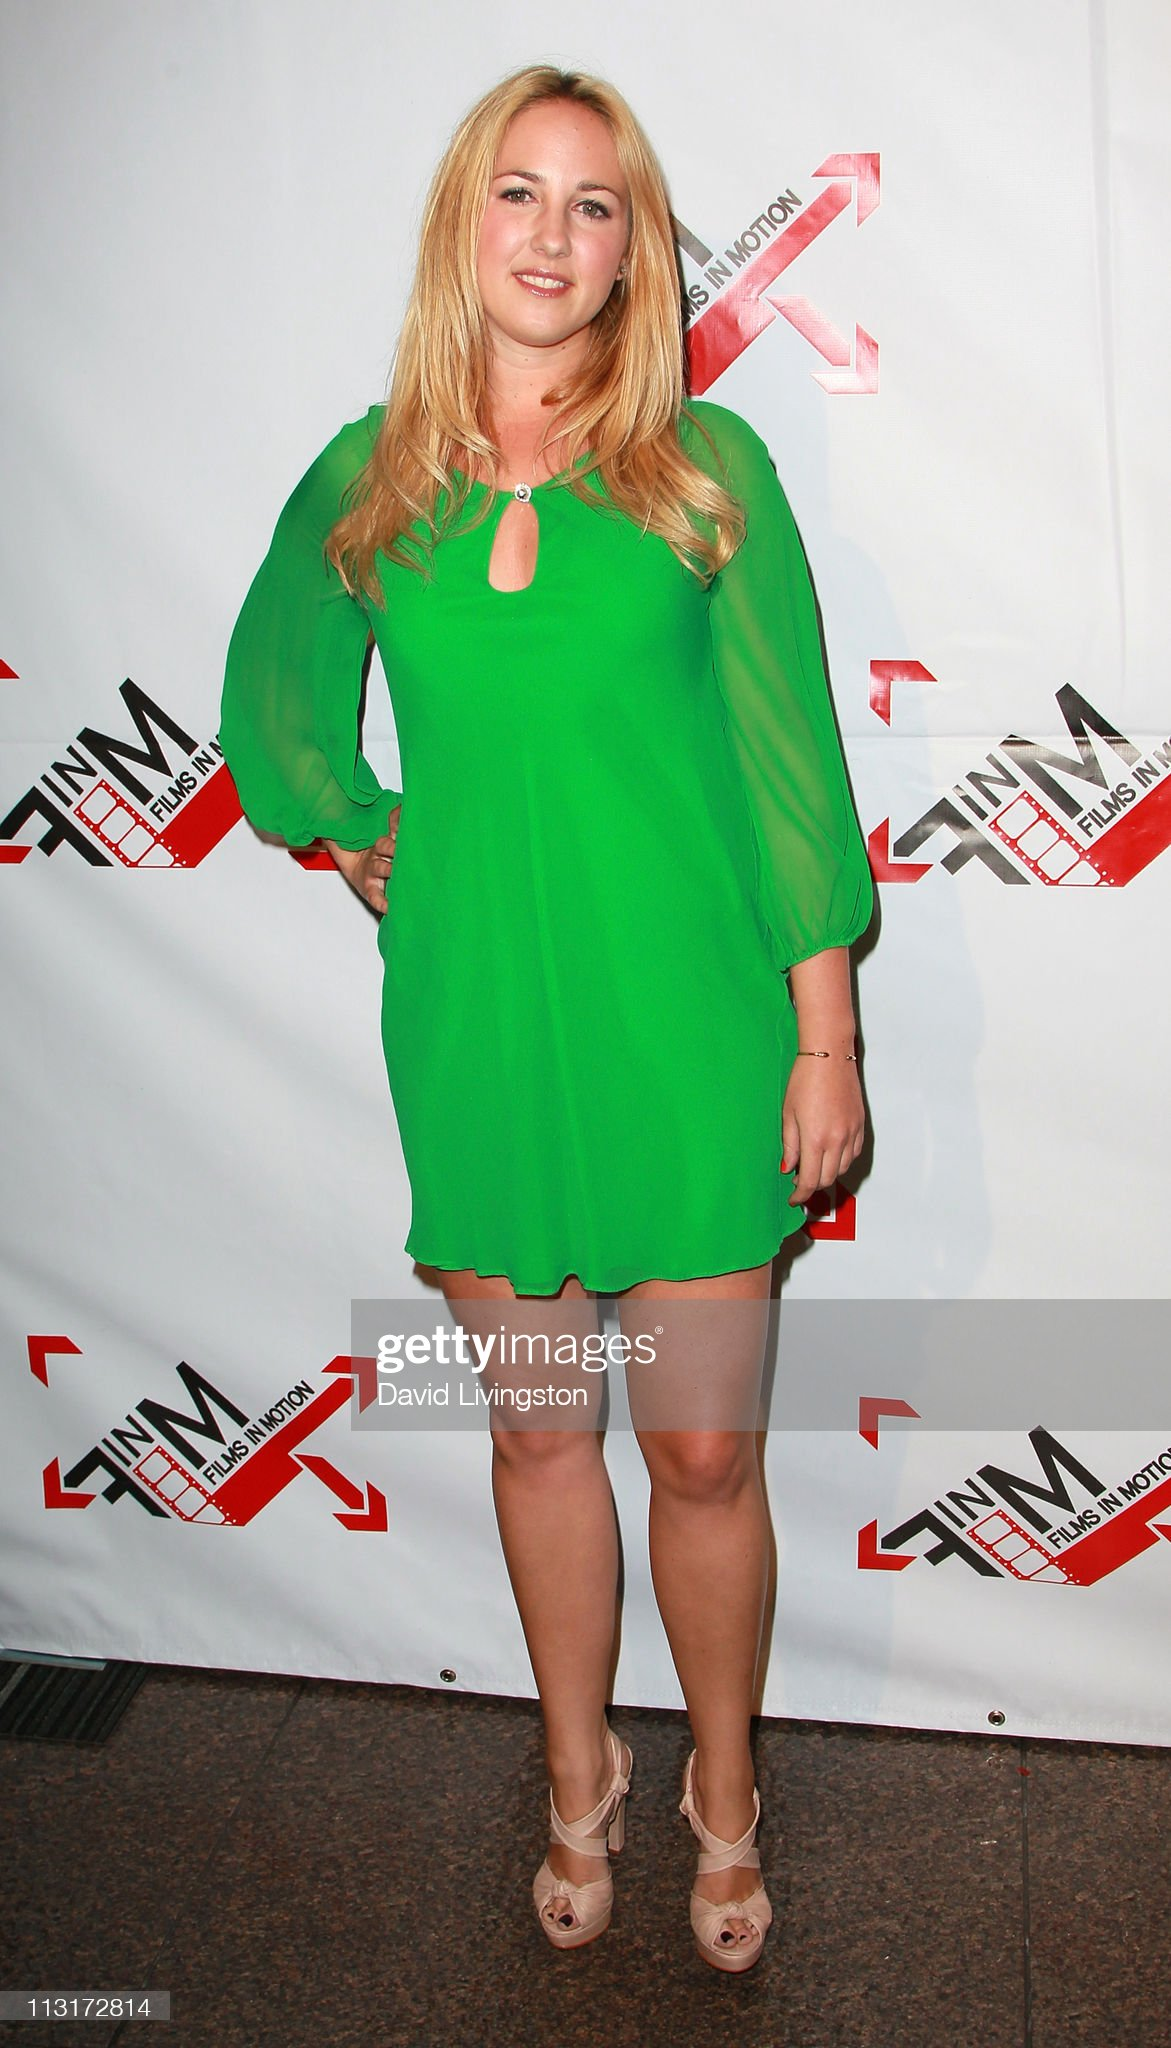 """Screening Of Films In Motion & Lionsgate Entertainment's """"Blood Out"""" - Arrivals : News Photo"""